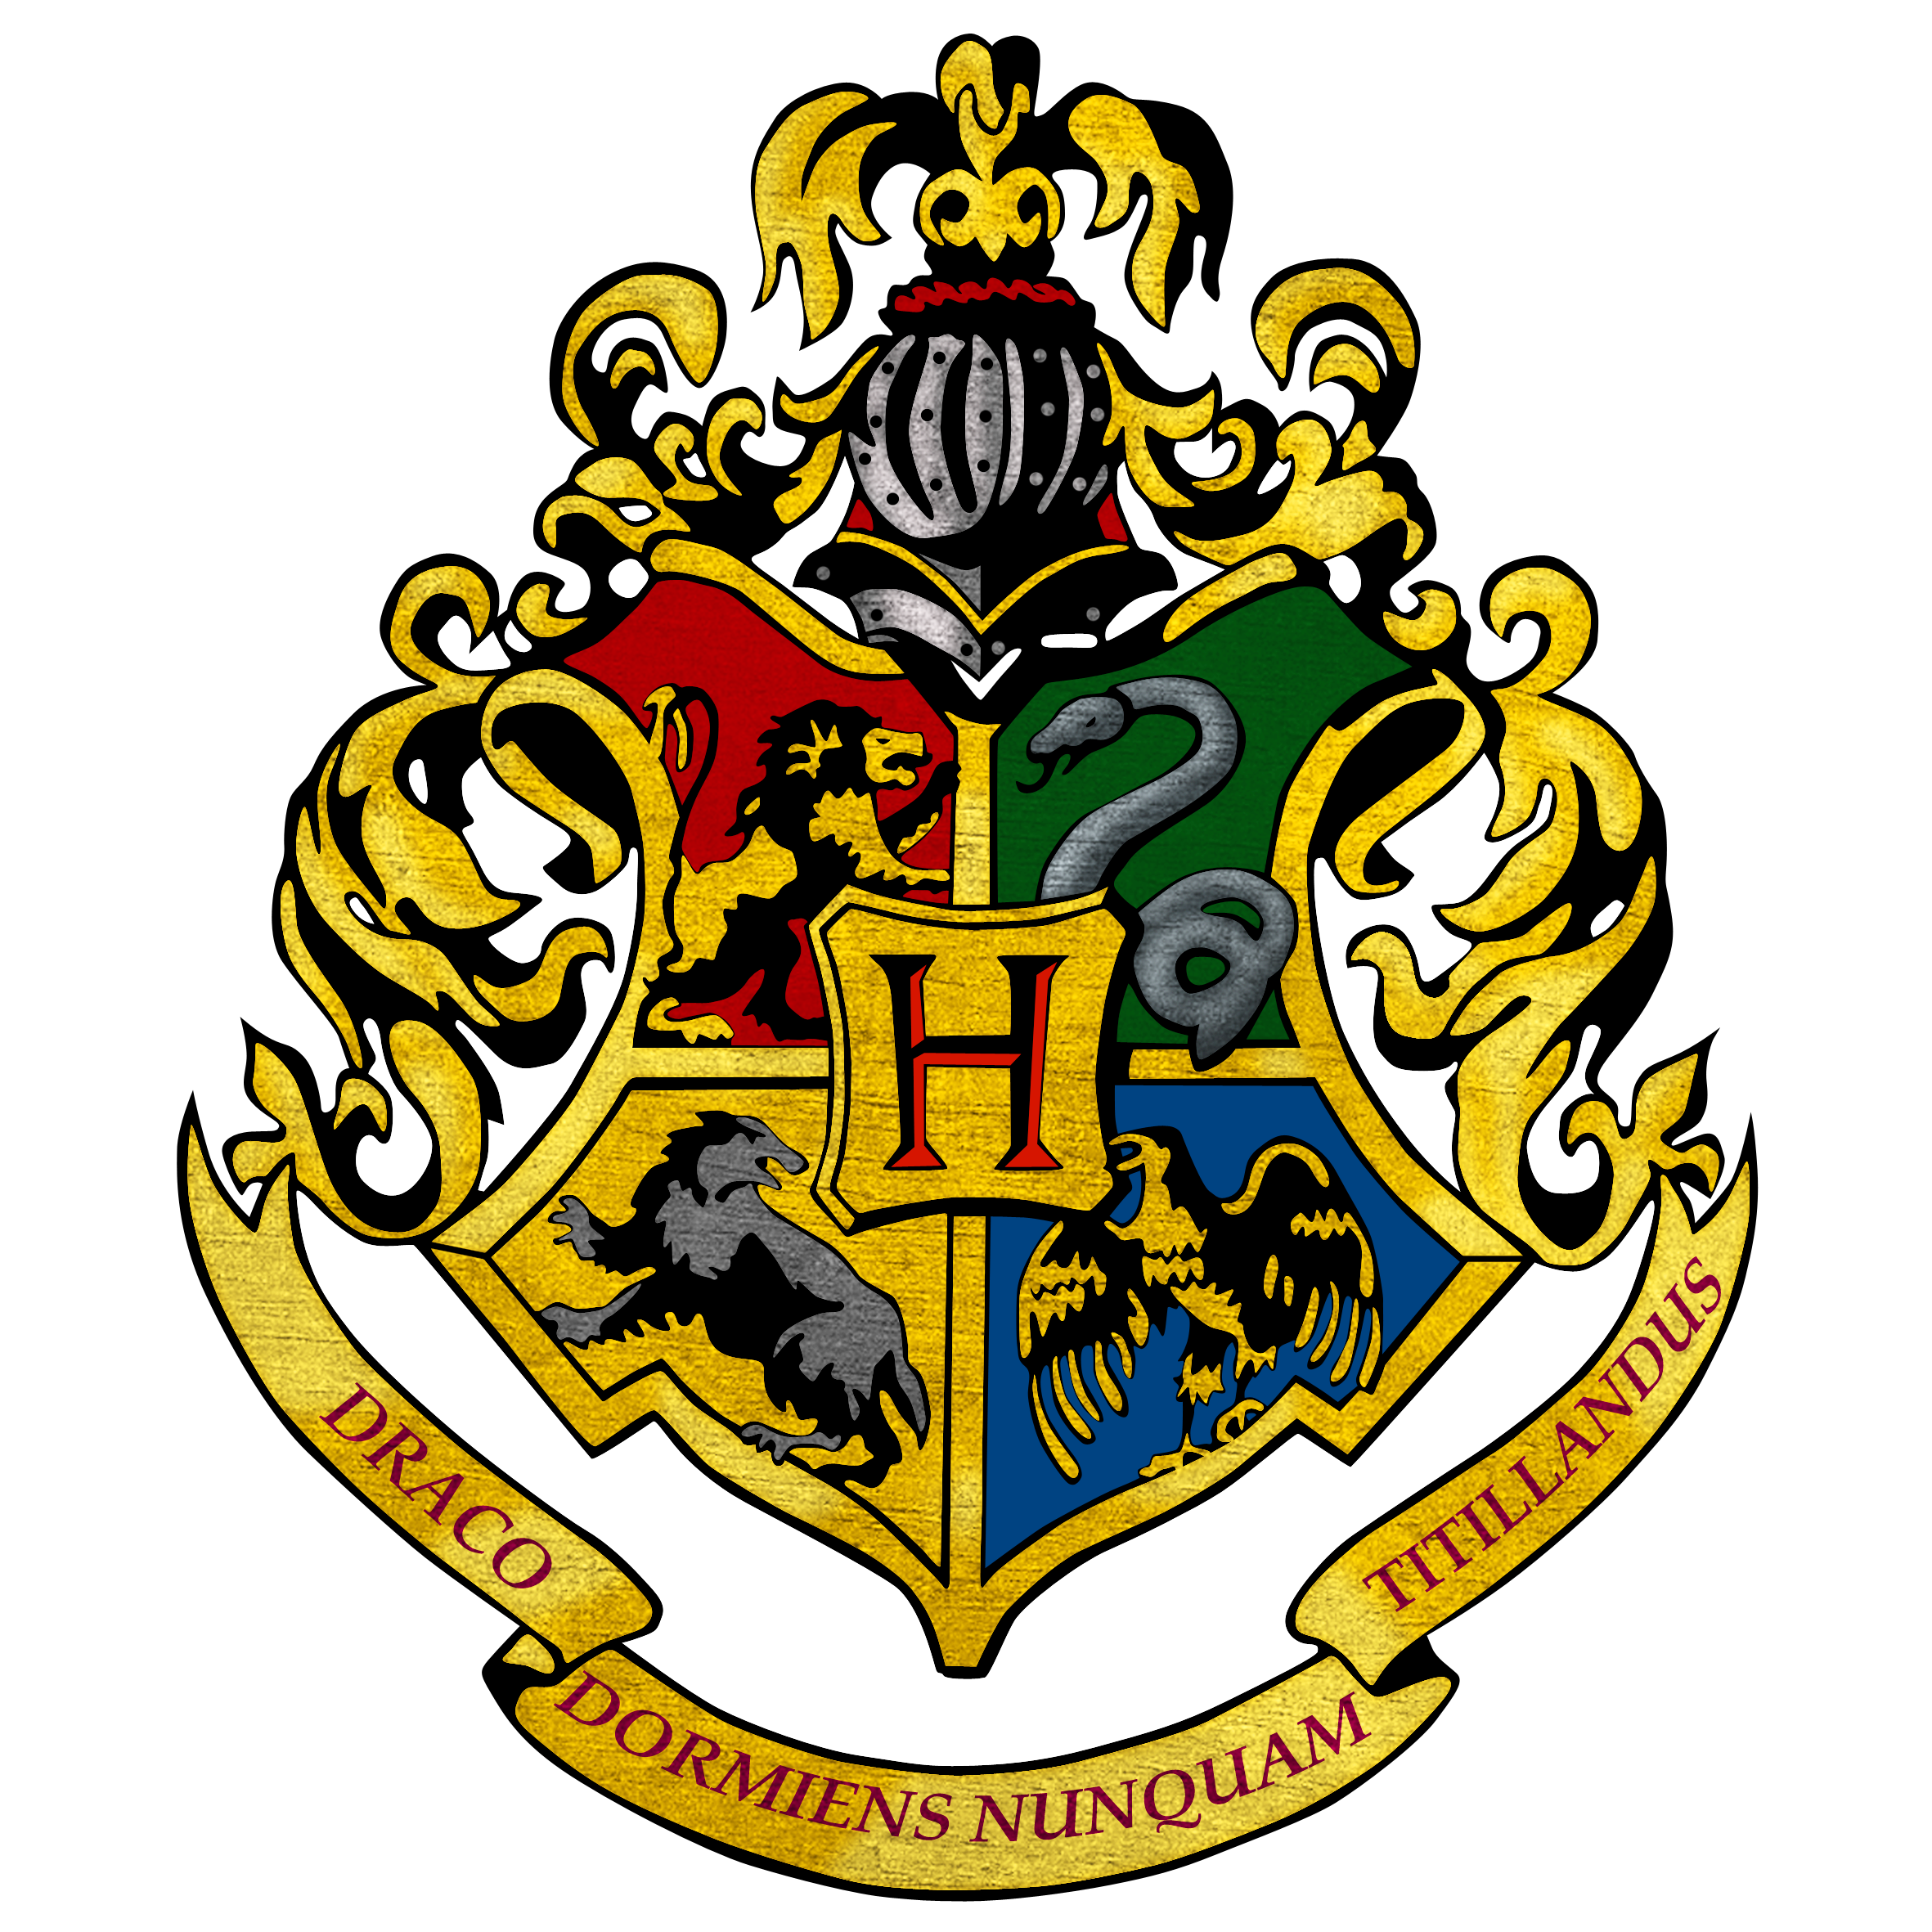 Harry Potter Hogwarts Tag Harry Potter Manga Hogwarts Harry Potter Et